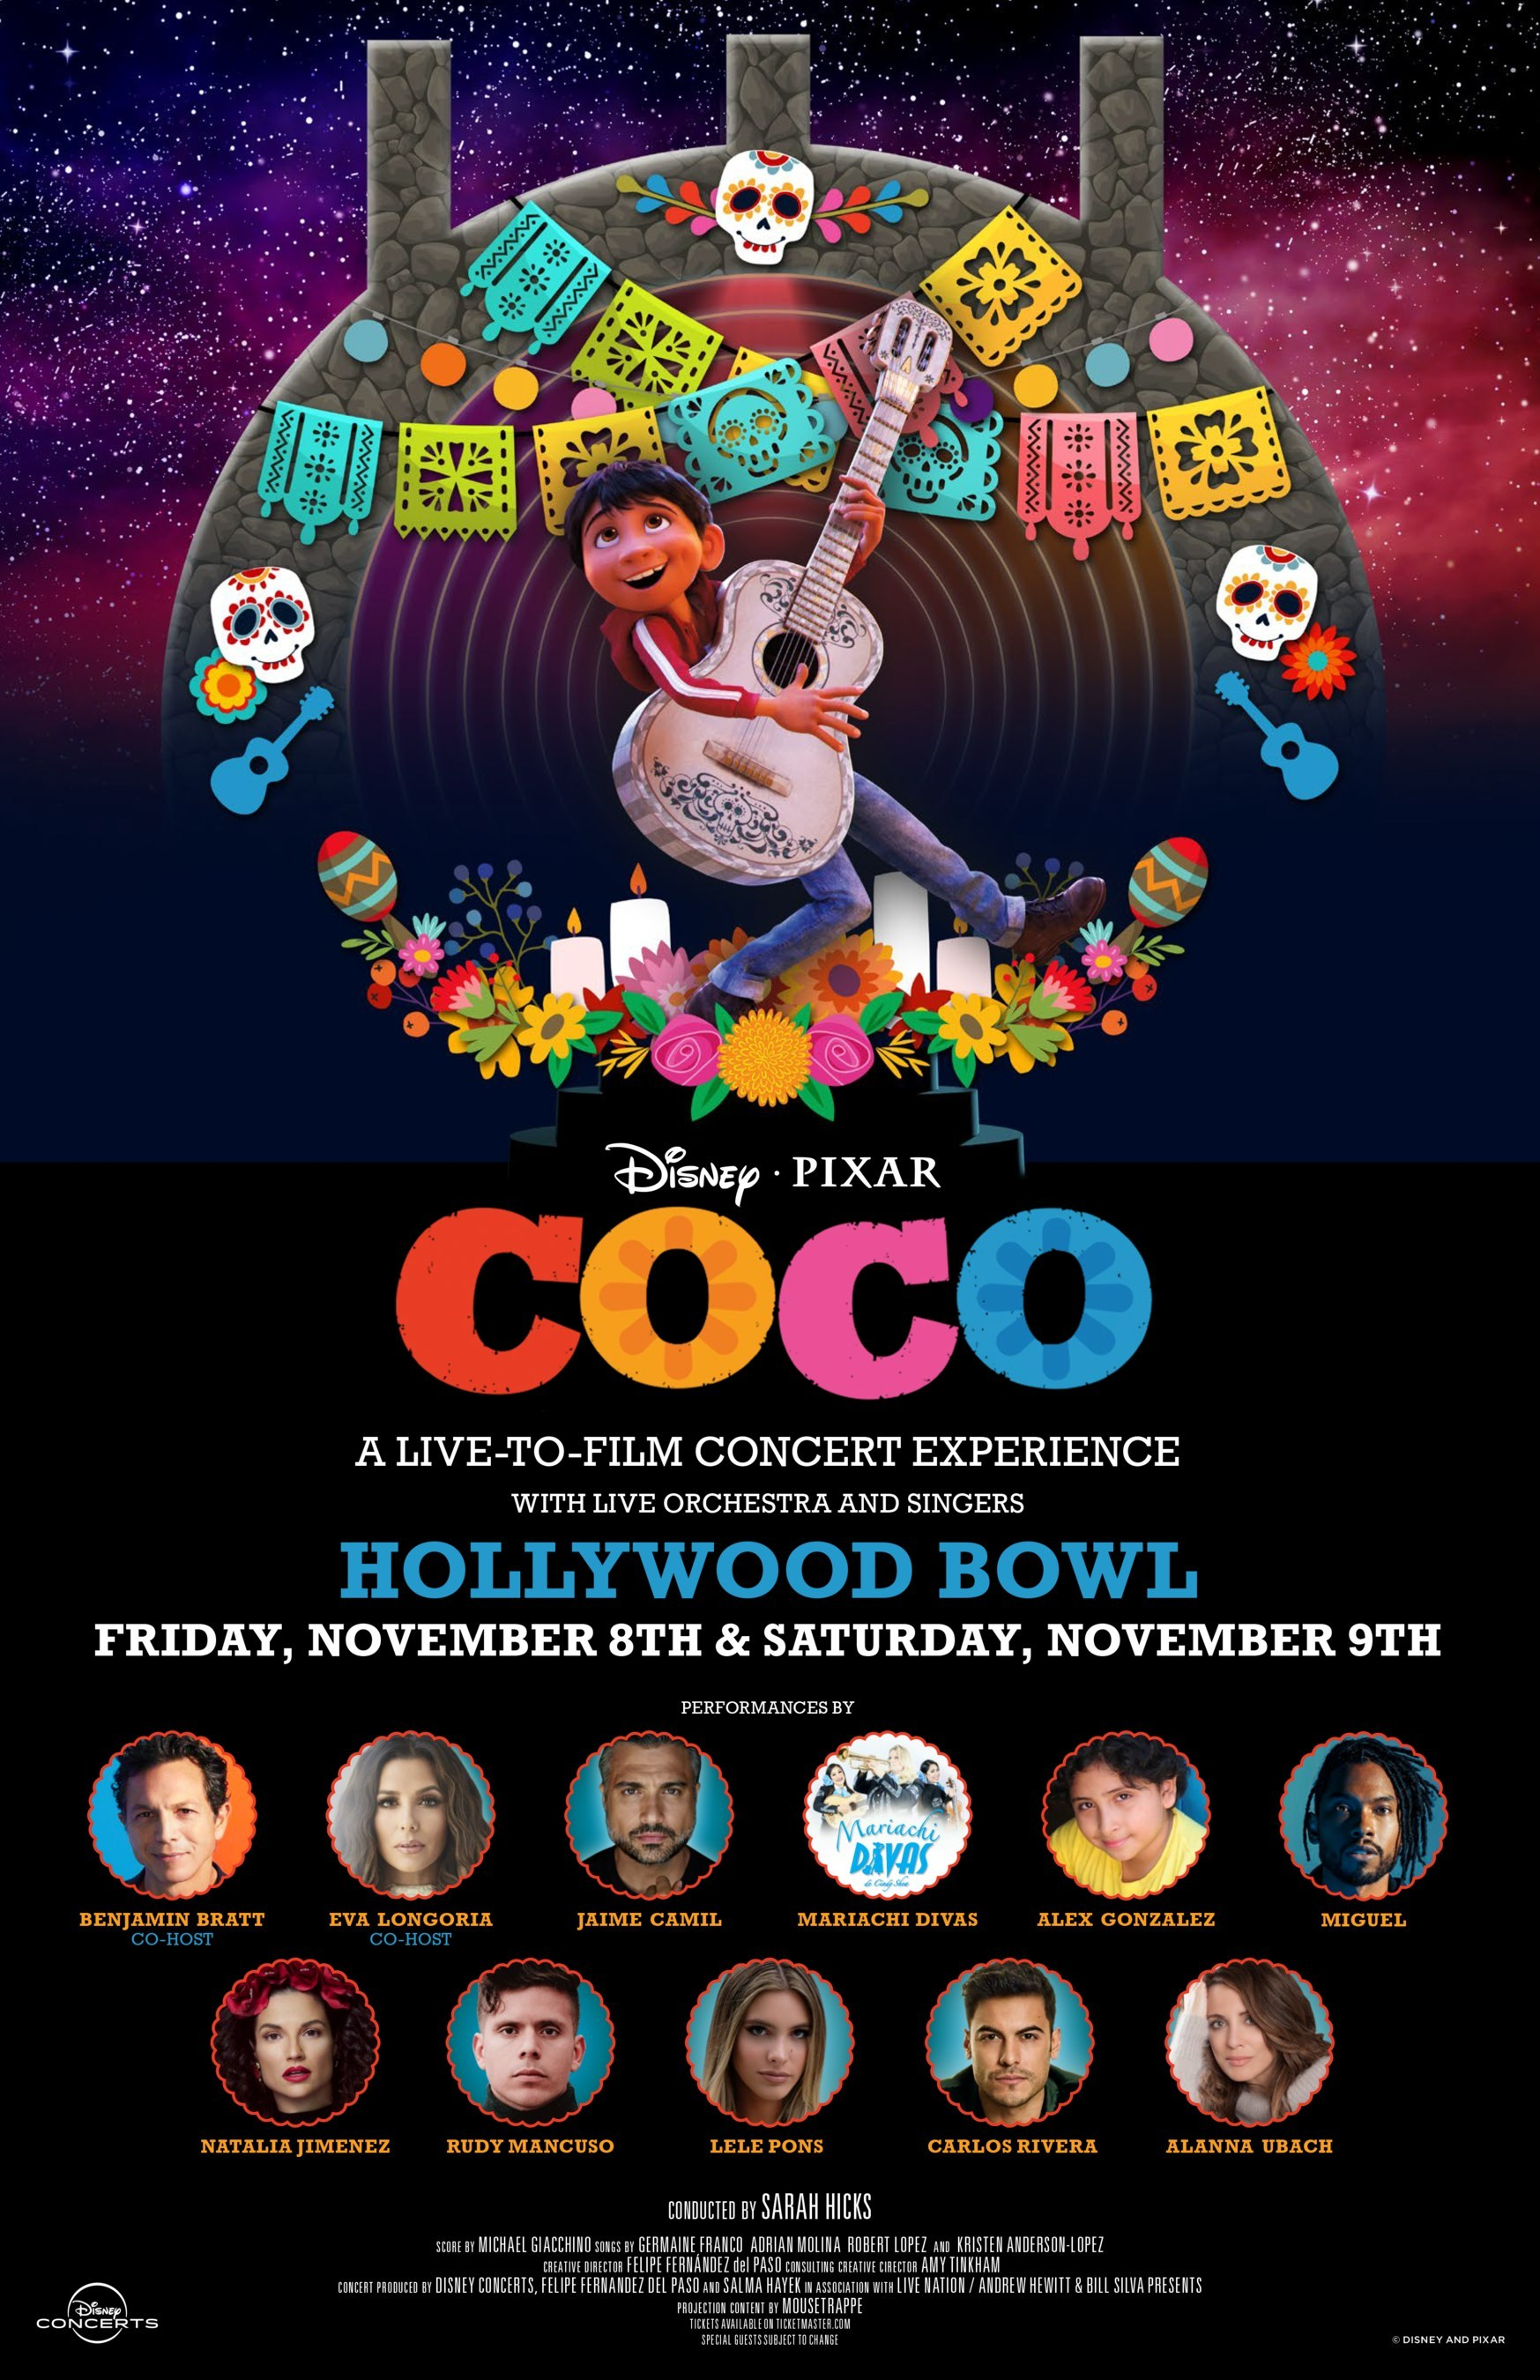 Coco at the Hollywood Bowl Flyer